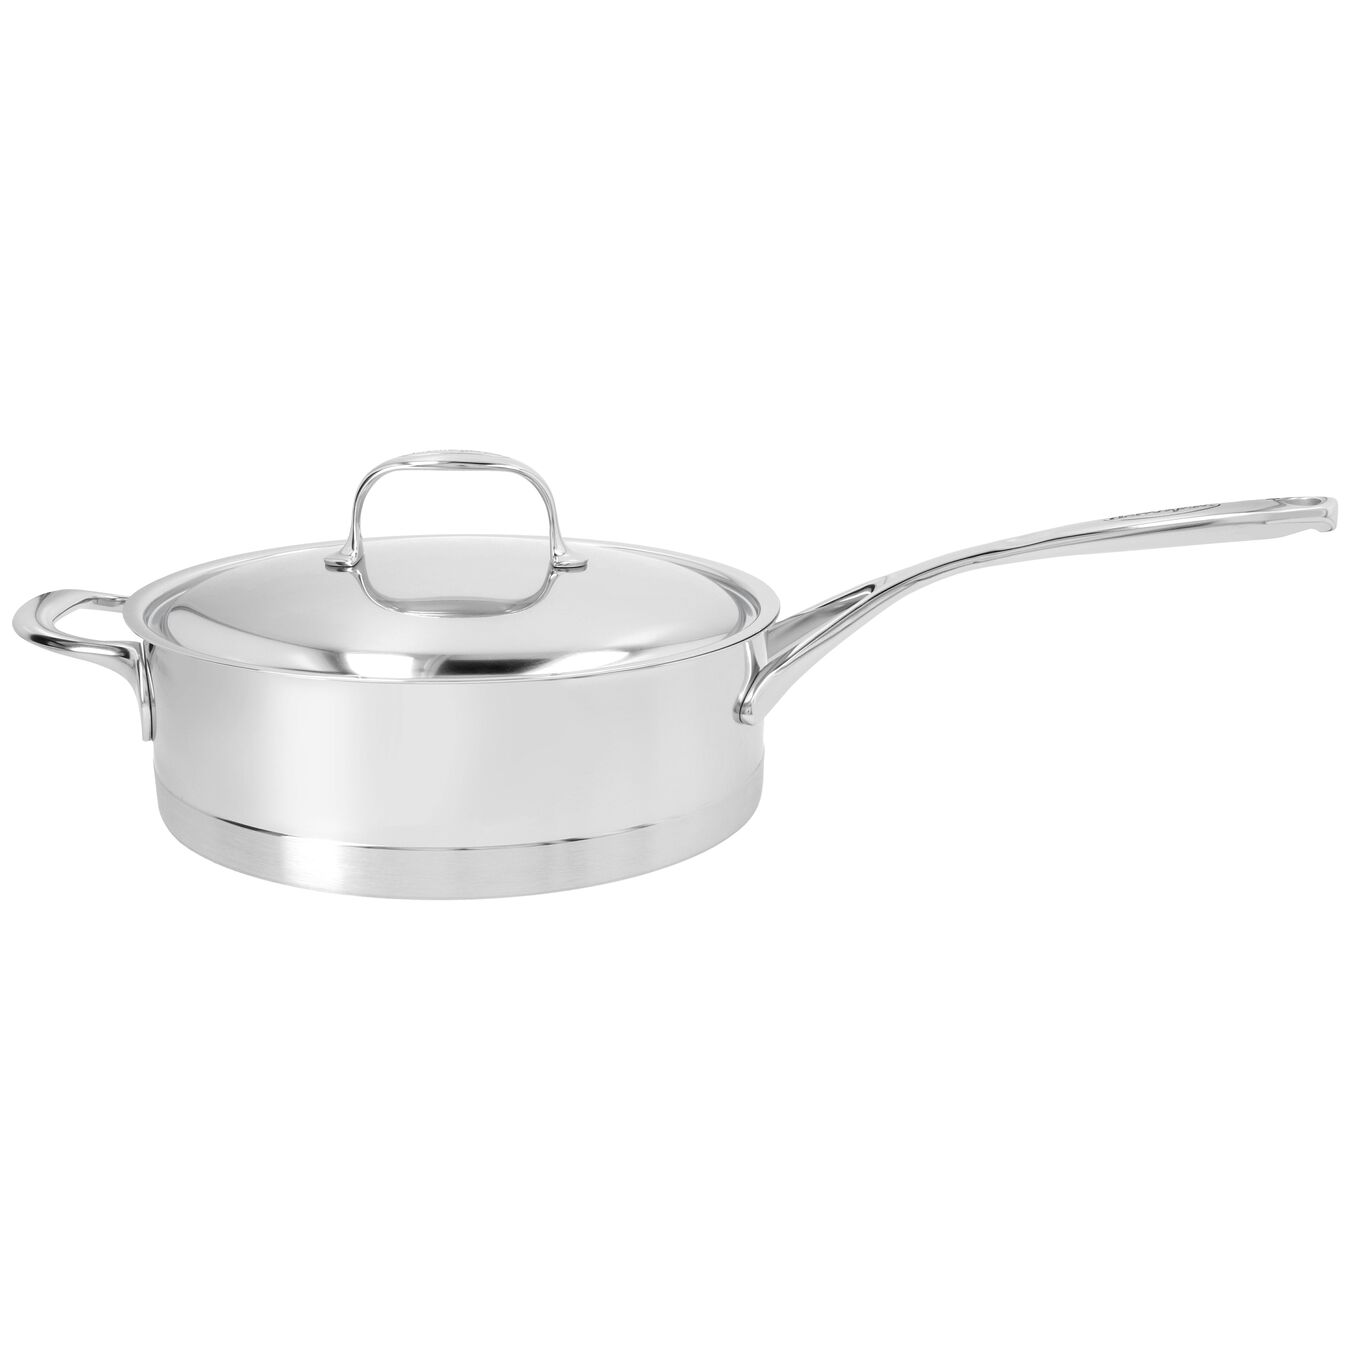 9.5-inch Sauté Pan with Helper Handle and Lid, 18/10 Stainless Steel ,,large 1